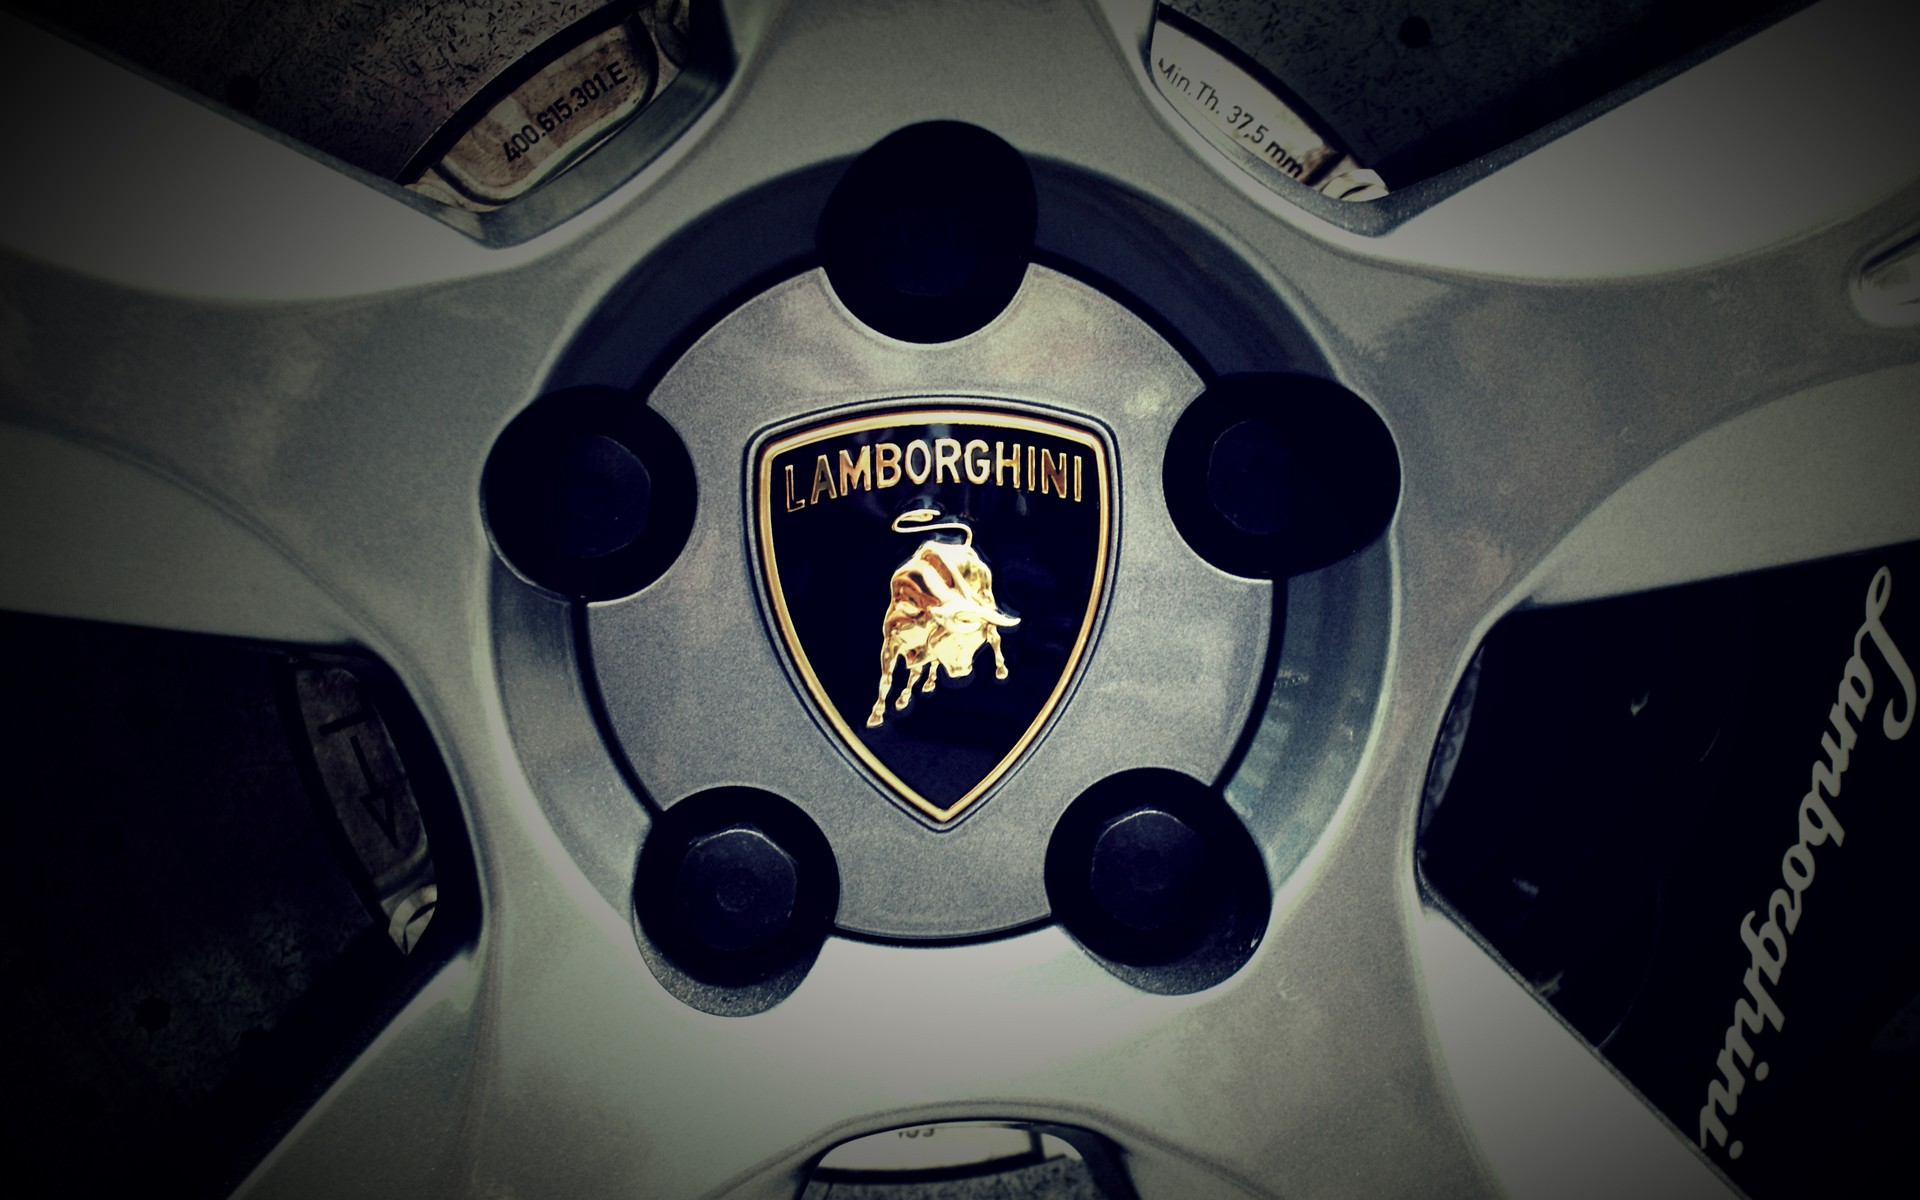 Lamborghini Logo Wallpapers Hd Lamborghini Logo HD Wallpaper 5 1920x1200